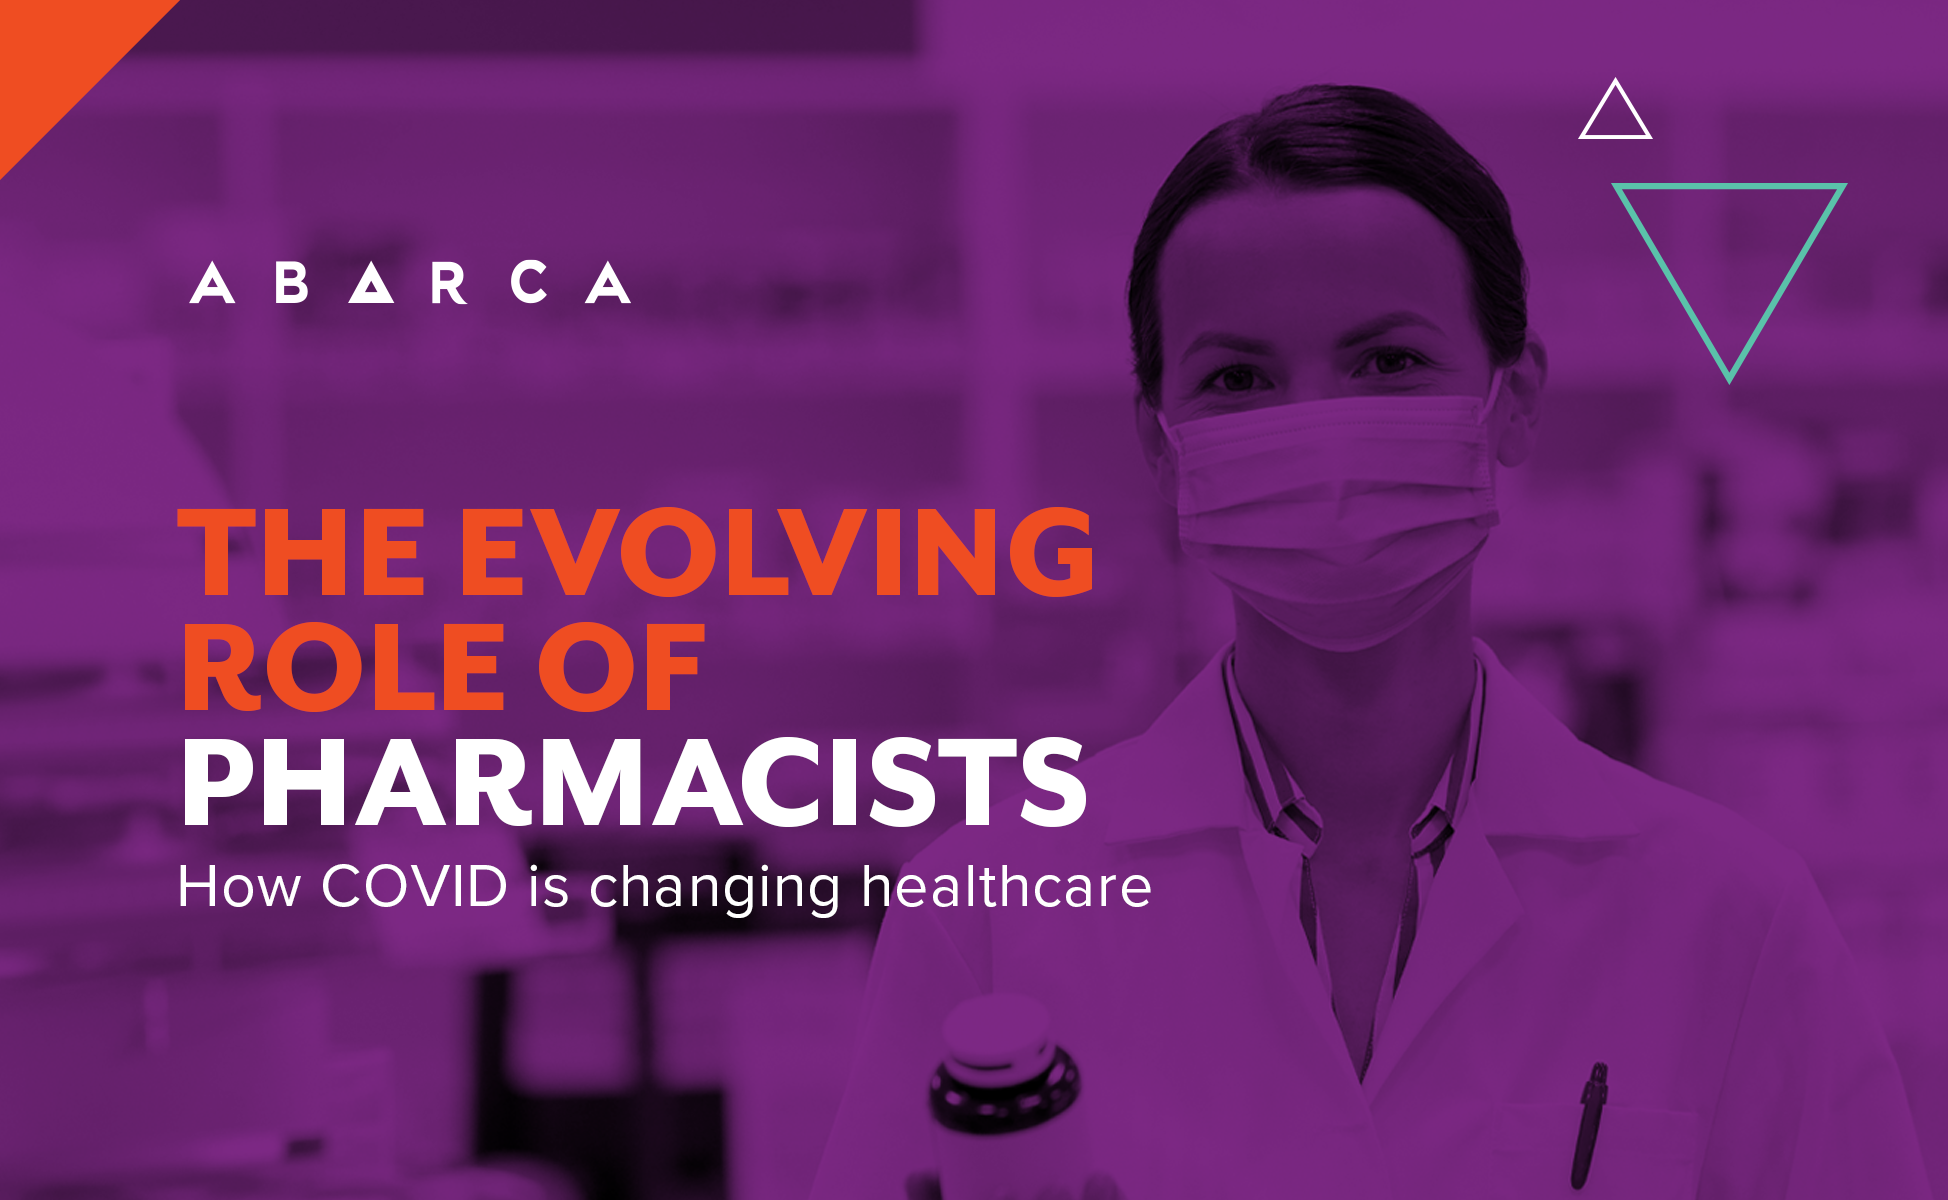 Abarca Health: The Evolving Role of Pharmacists